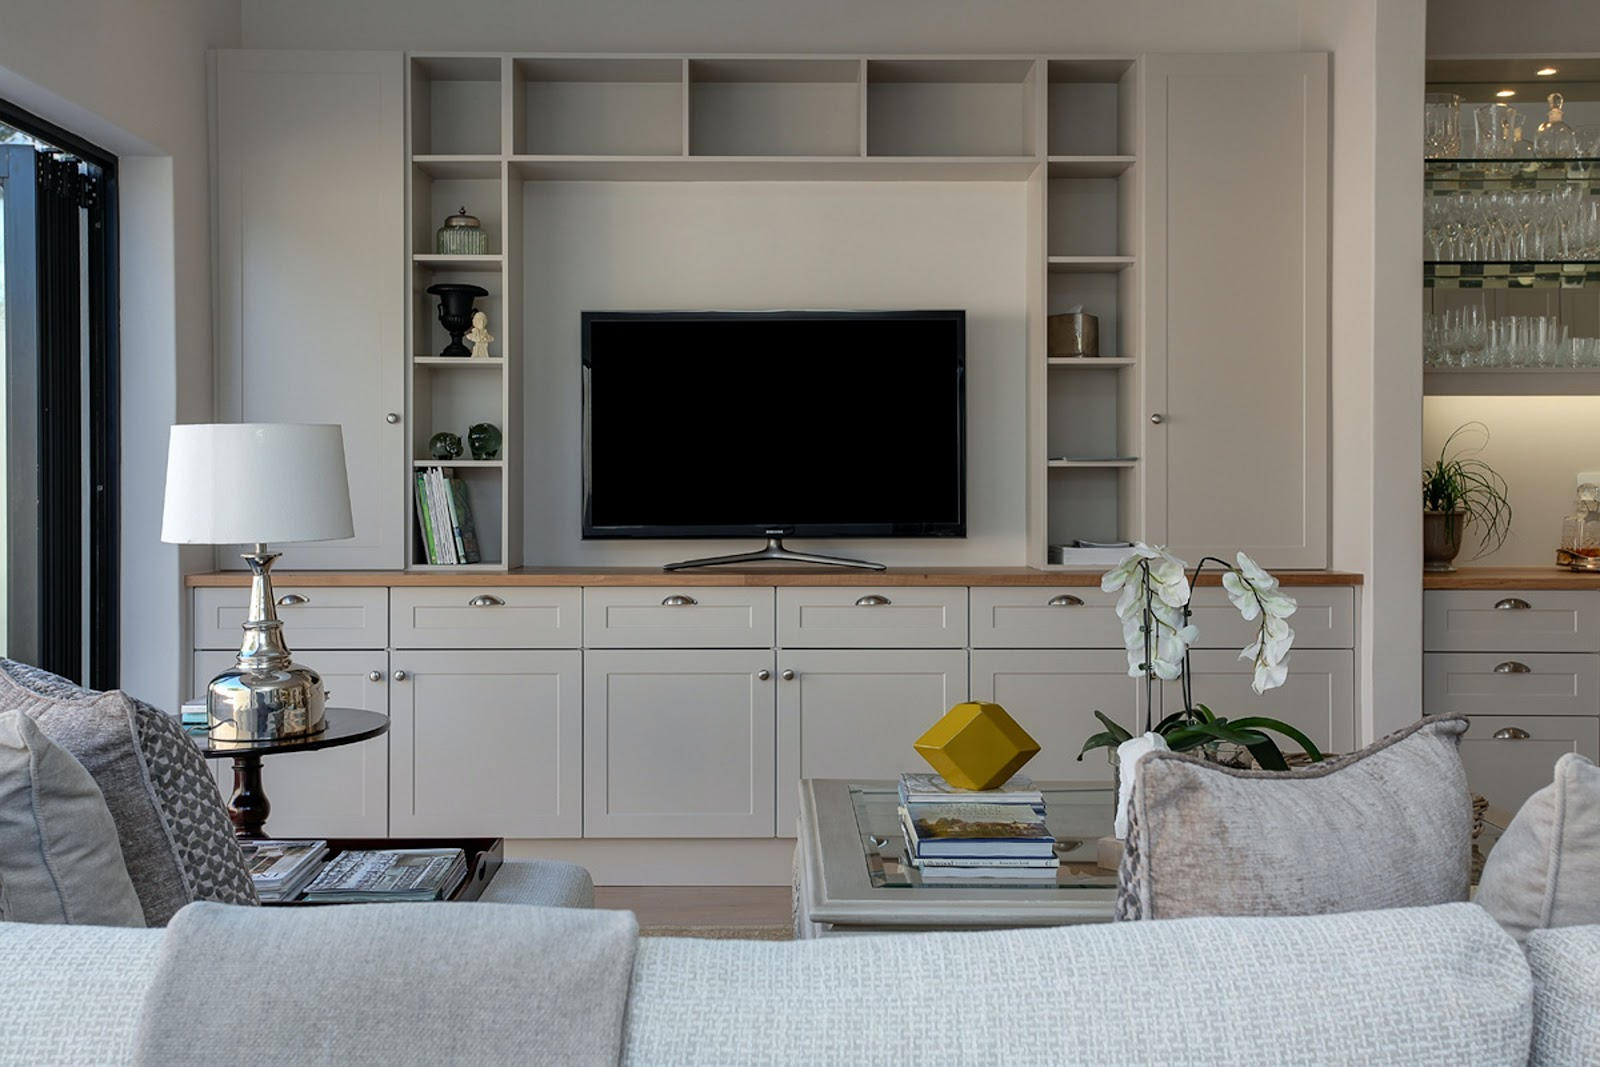 9 Tips To Help You Organize Your Home From Professional Organizers